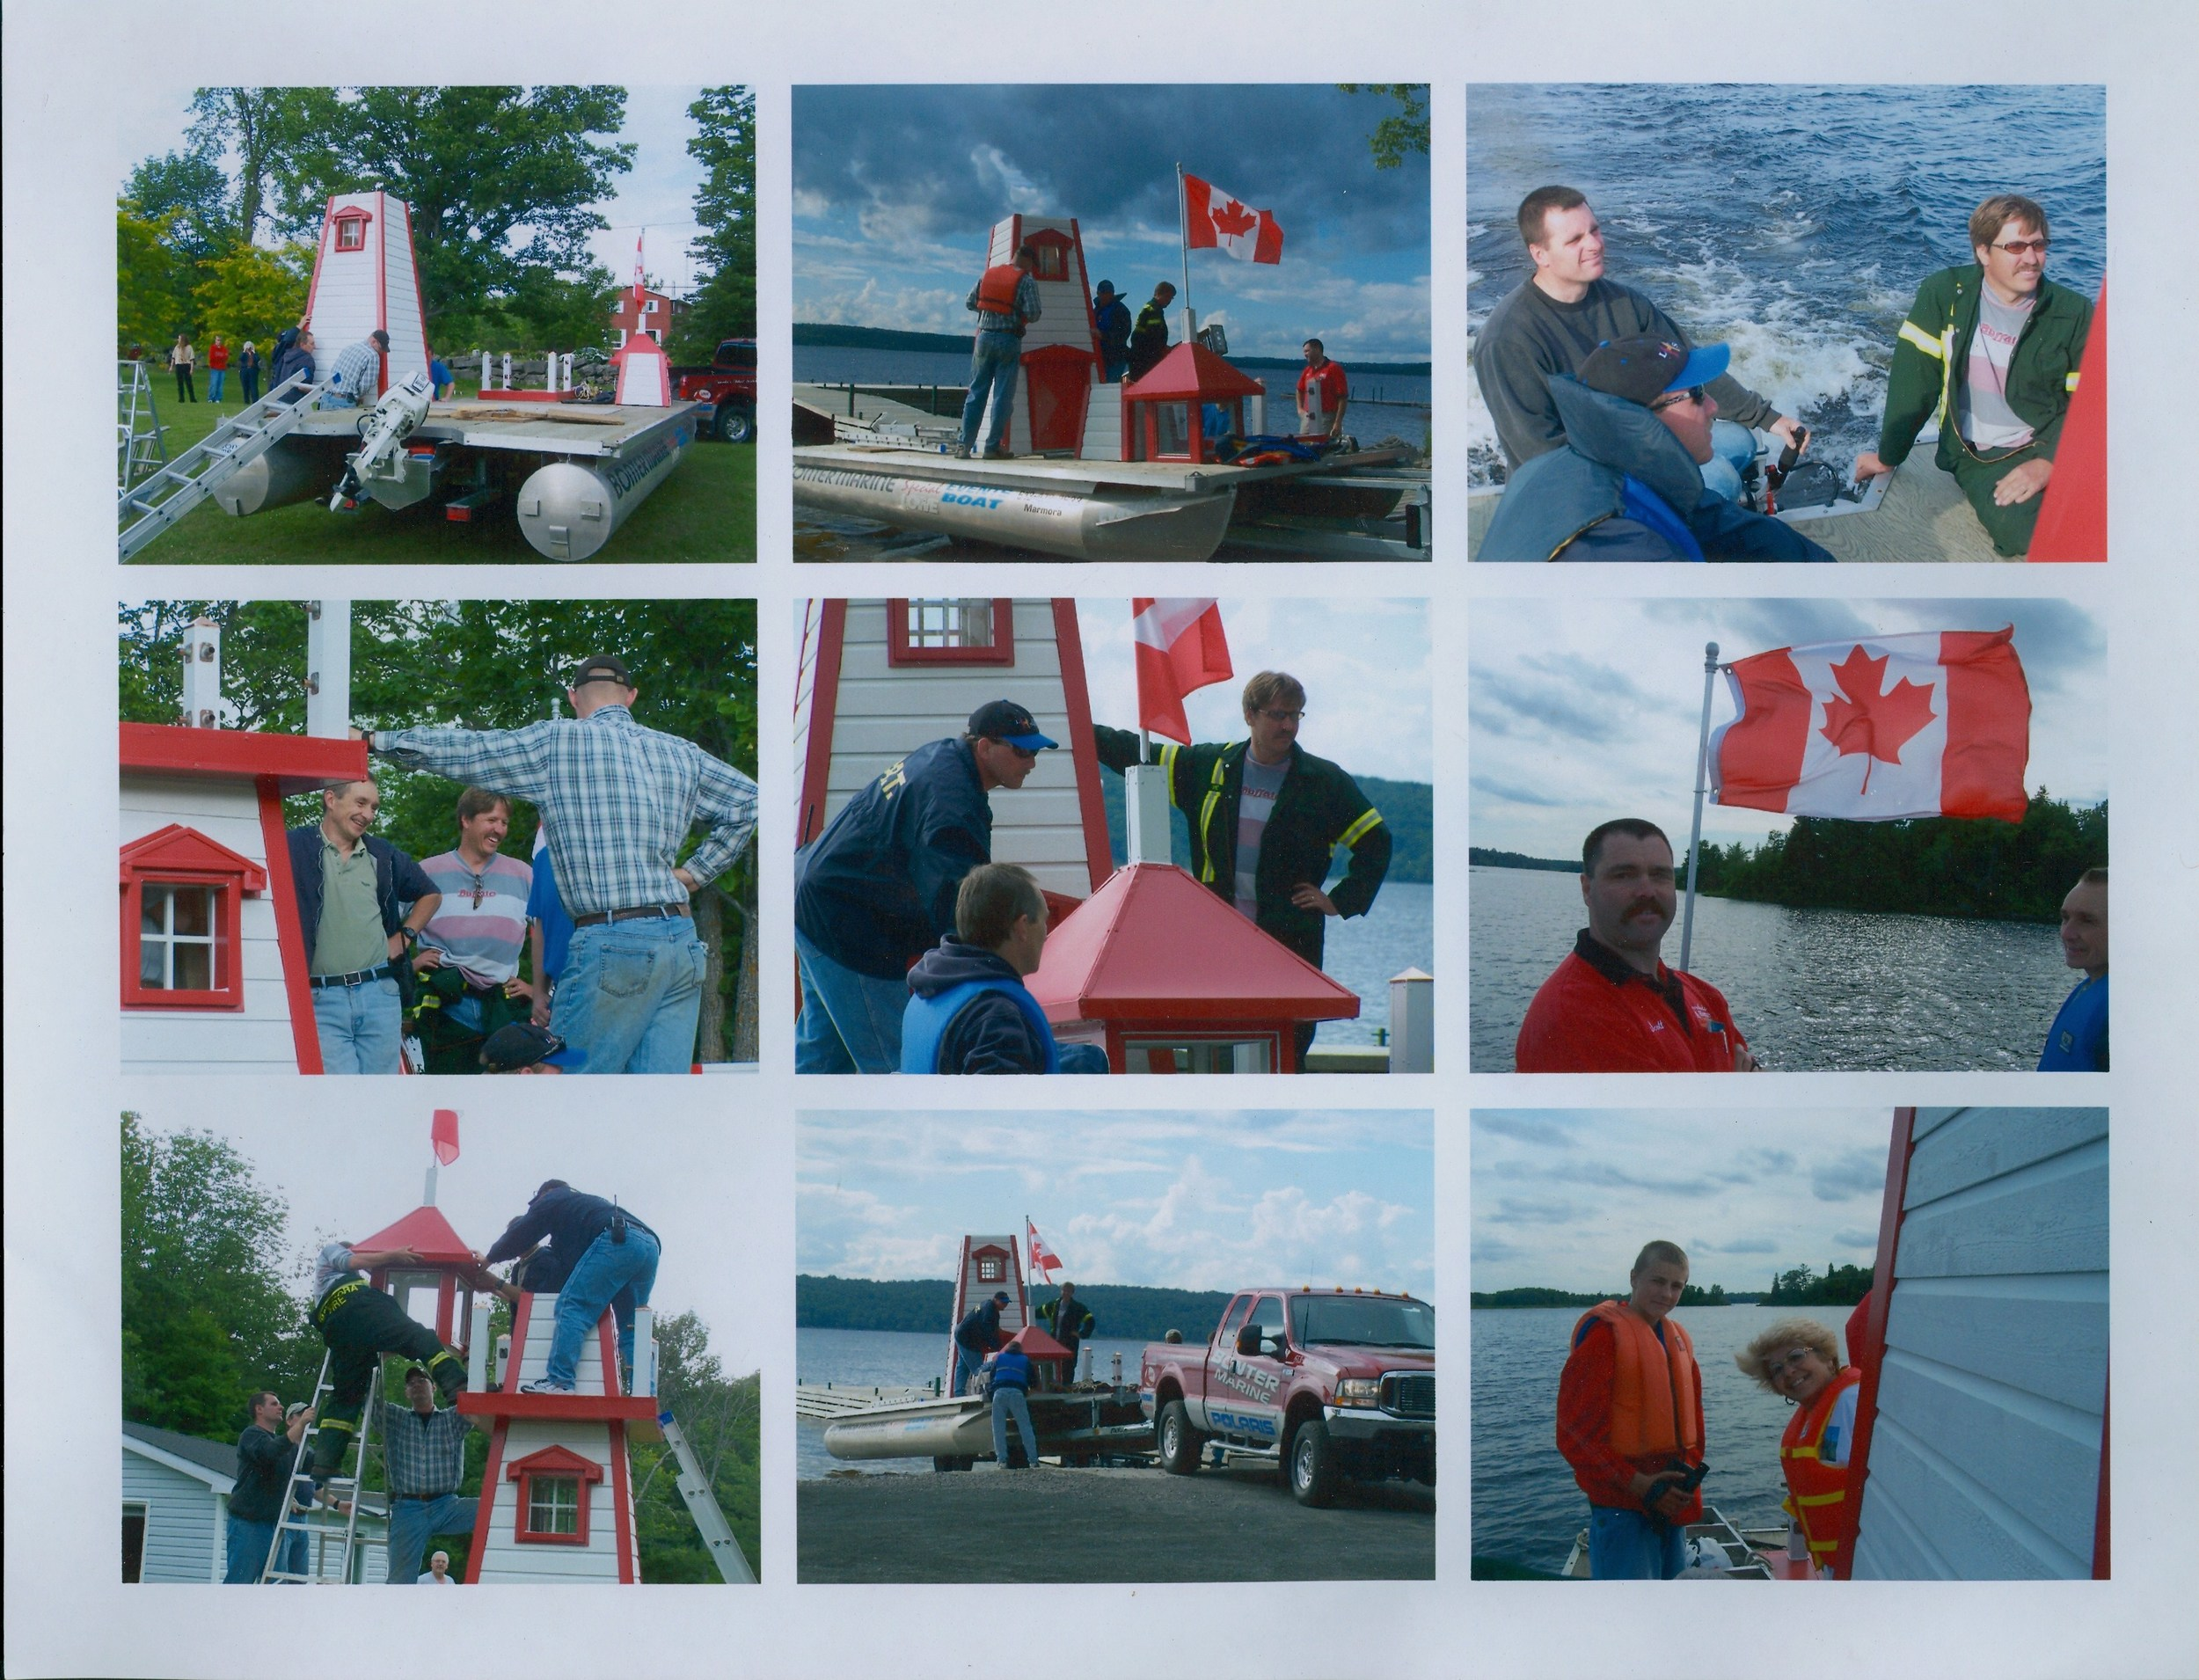 Blairton bay Erection of Lighthouse by Marmora Fire Department.jpg